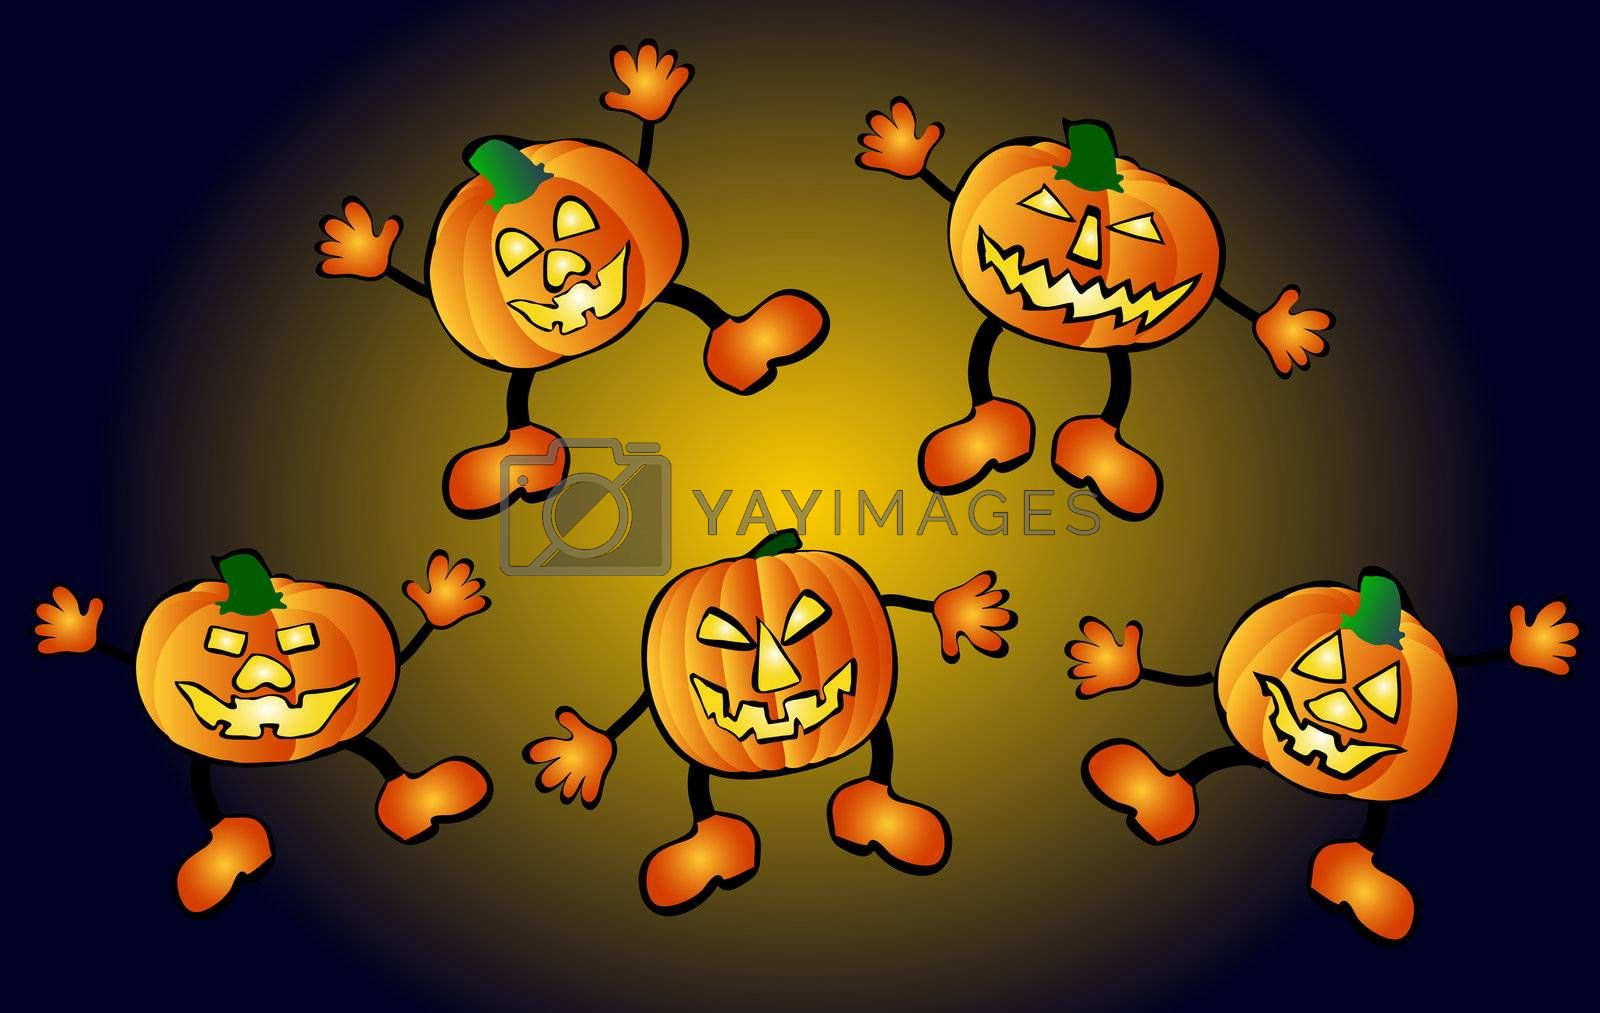 happy, jumping pumpkins by peromarketing